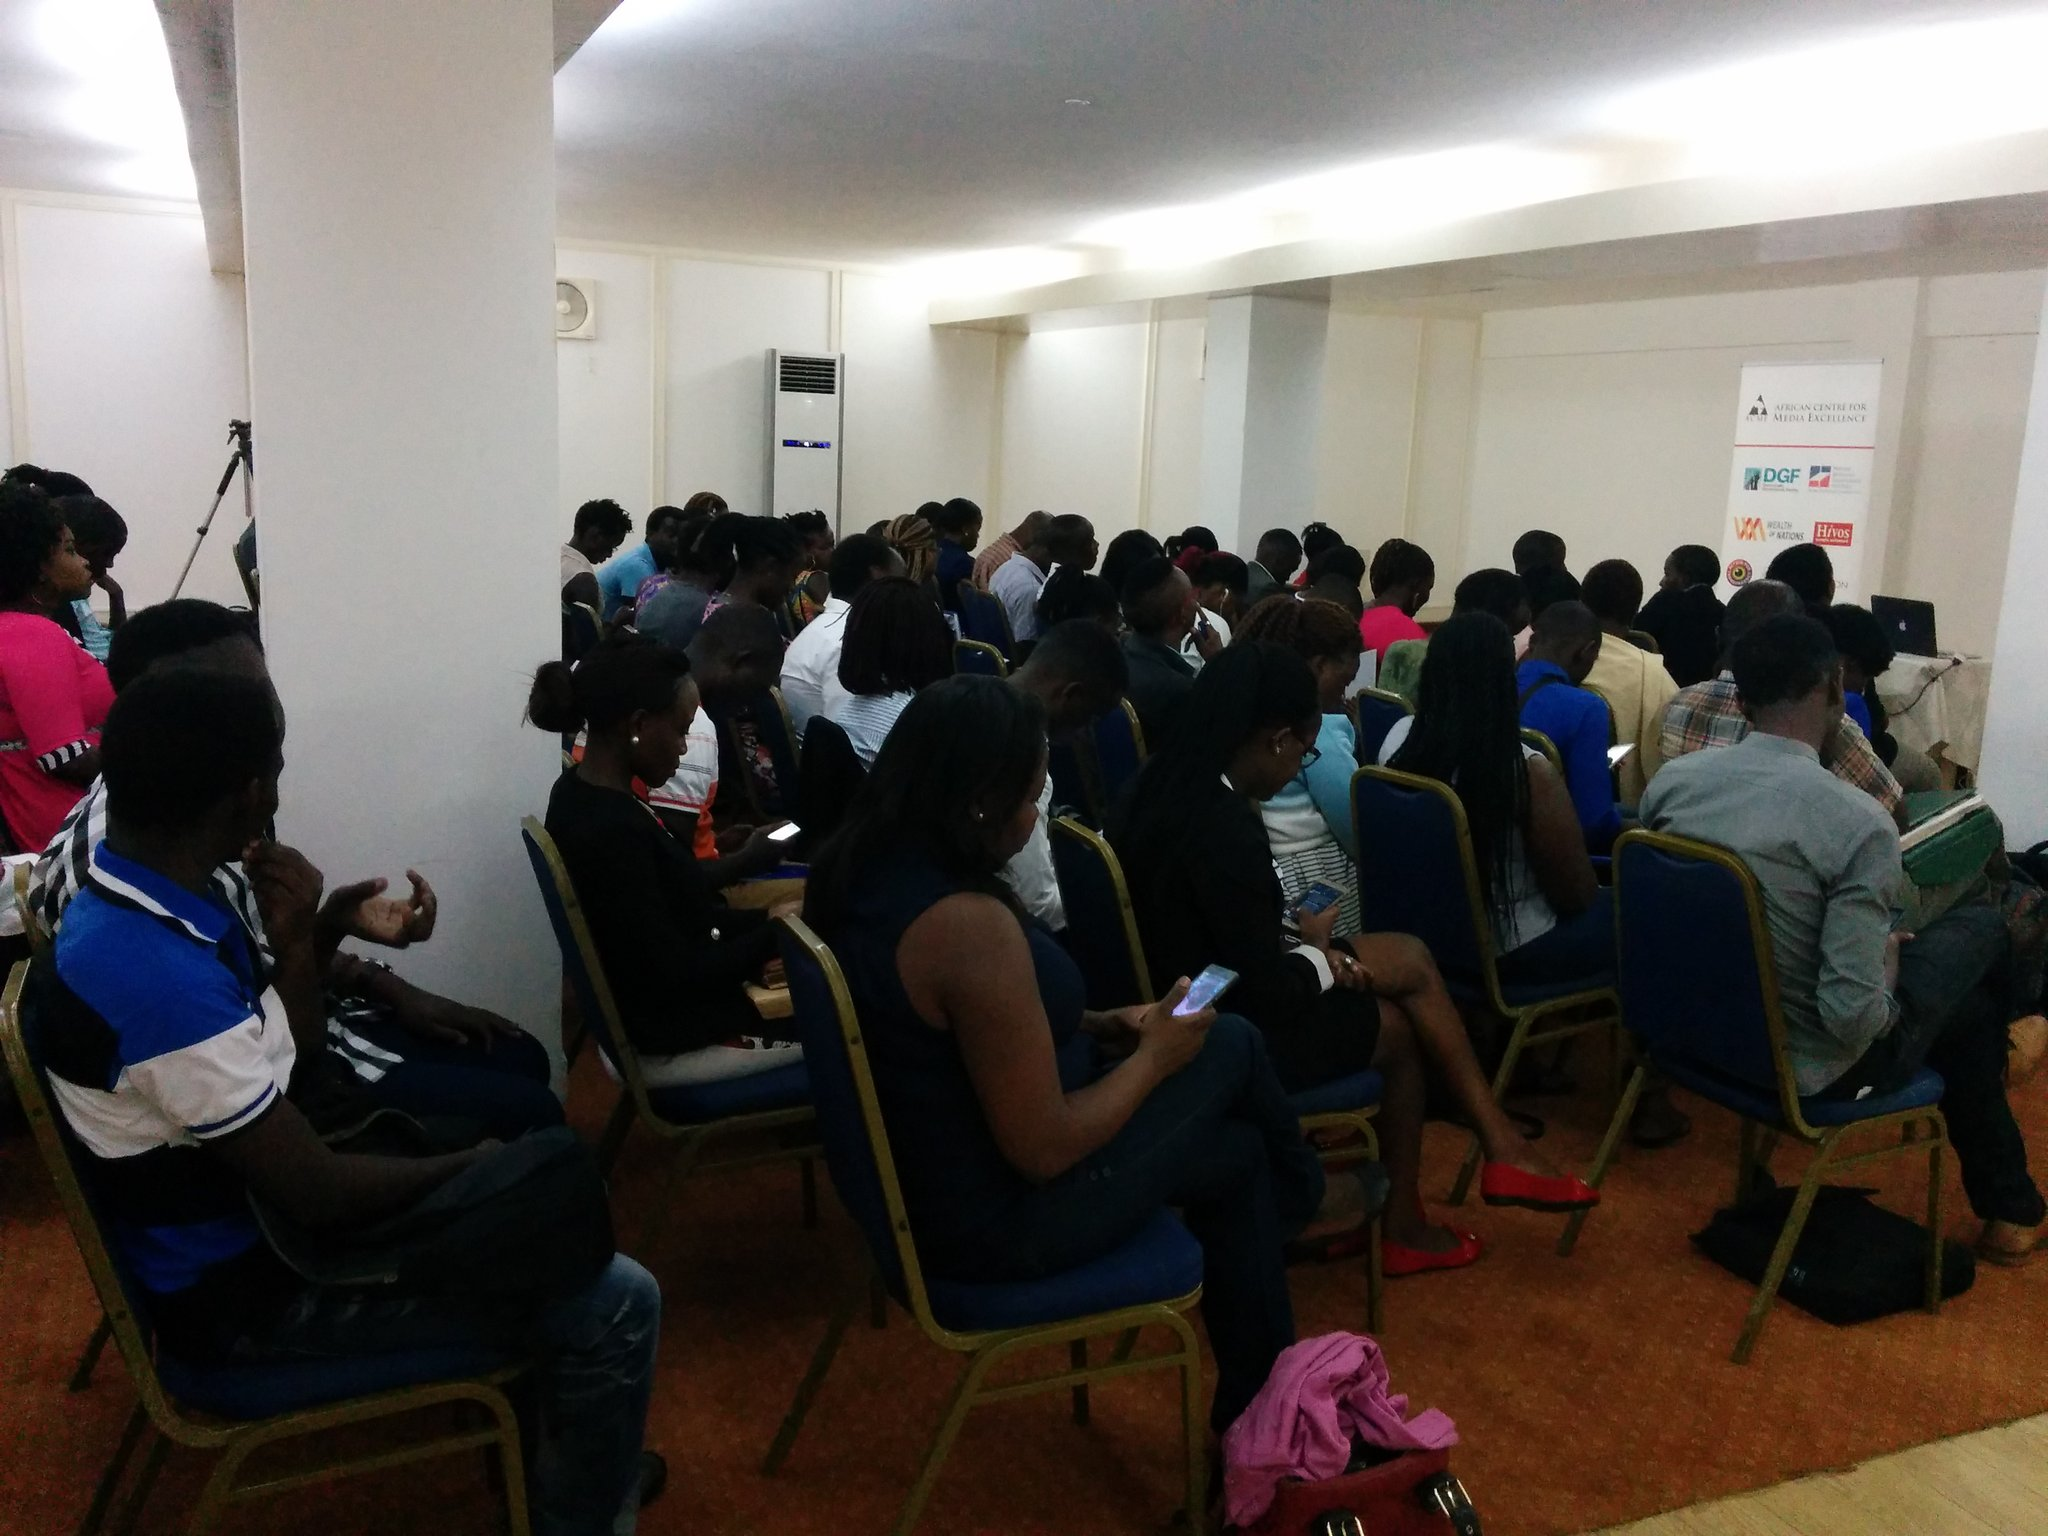 Full house at first #ACMETalk of the year. Topic today is African Journalism in the digital age by BBC's @kacungira https://t.co/DYjoPo8znp